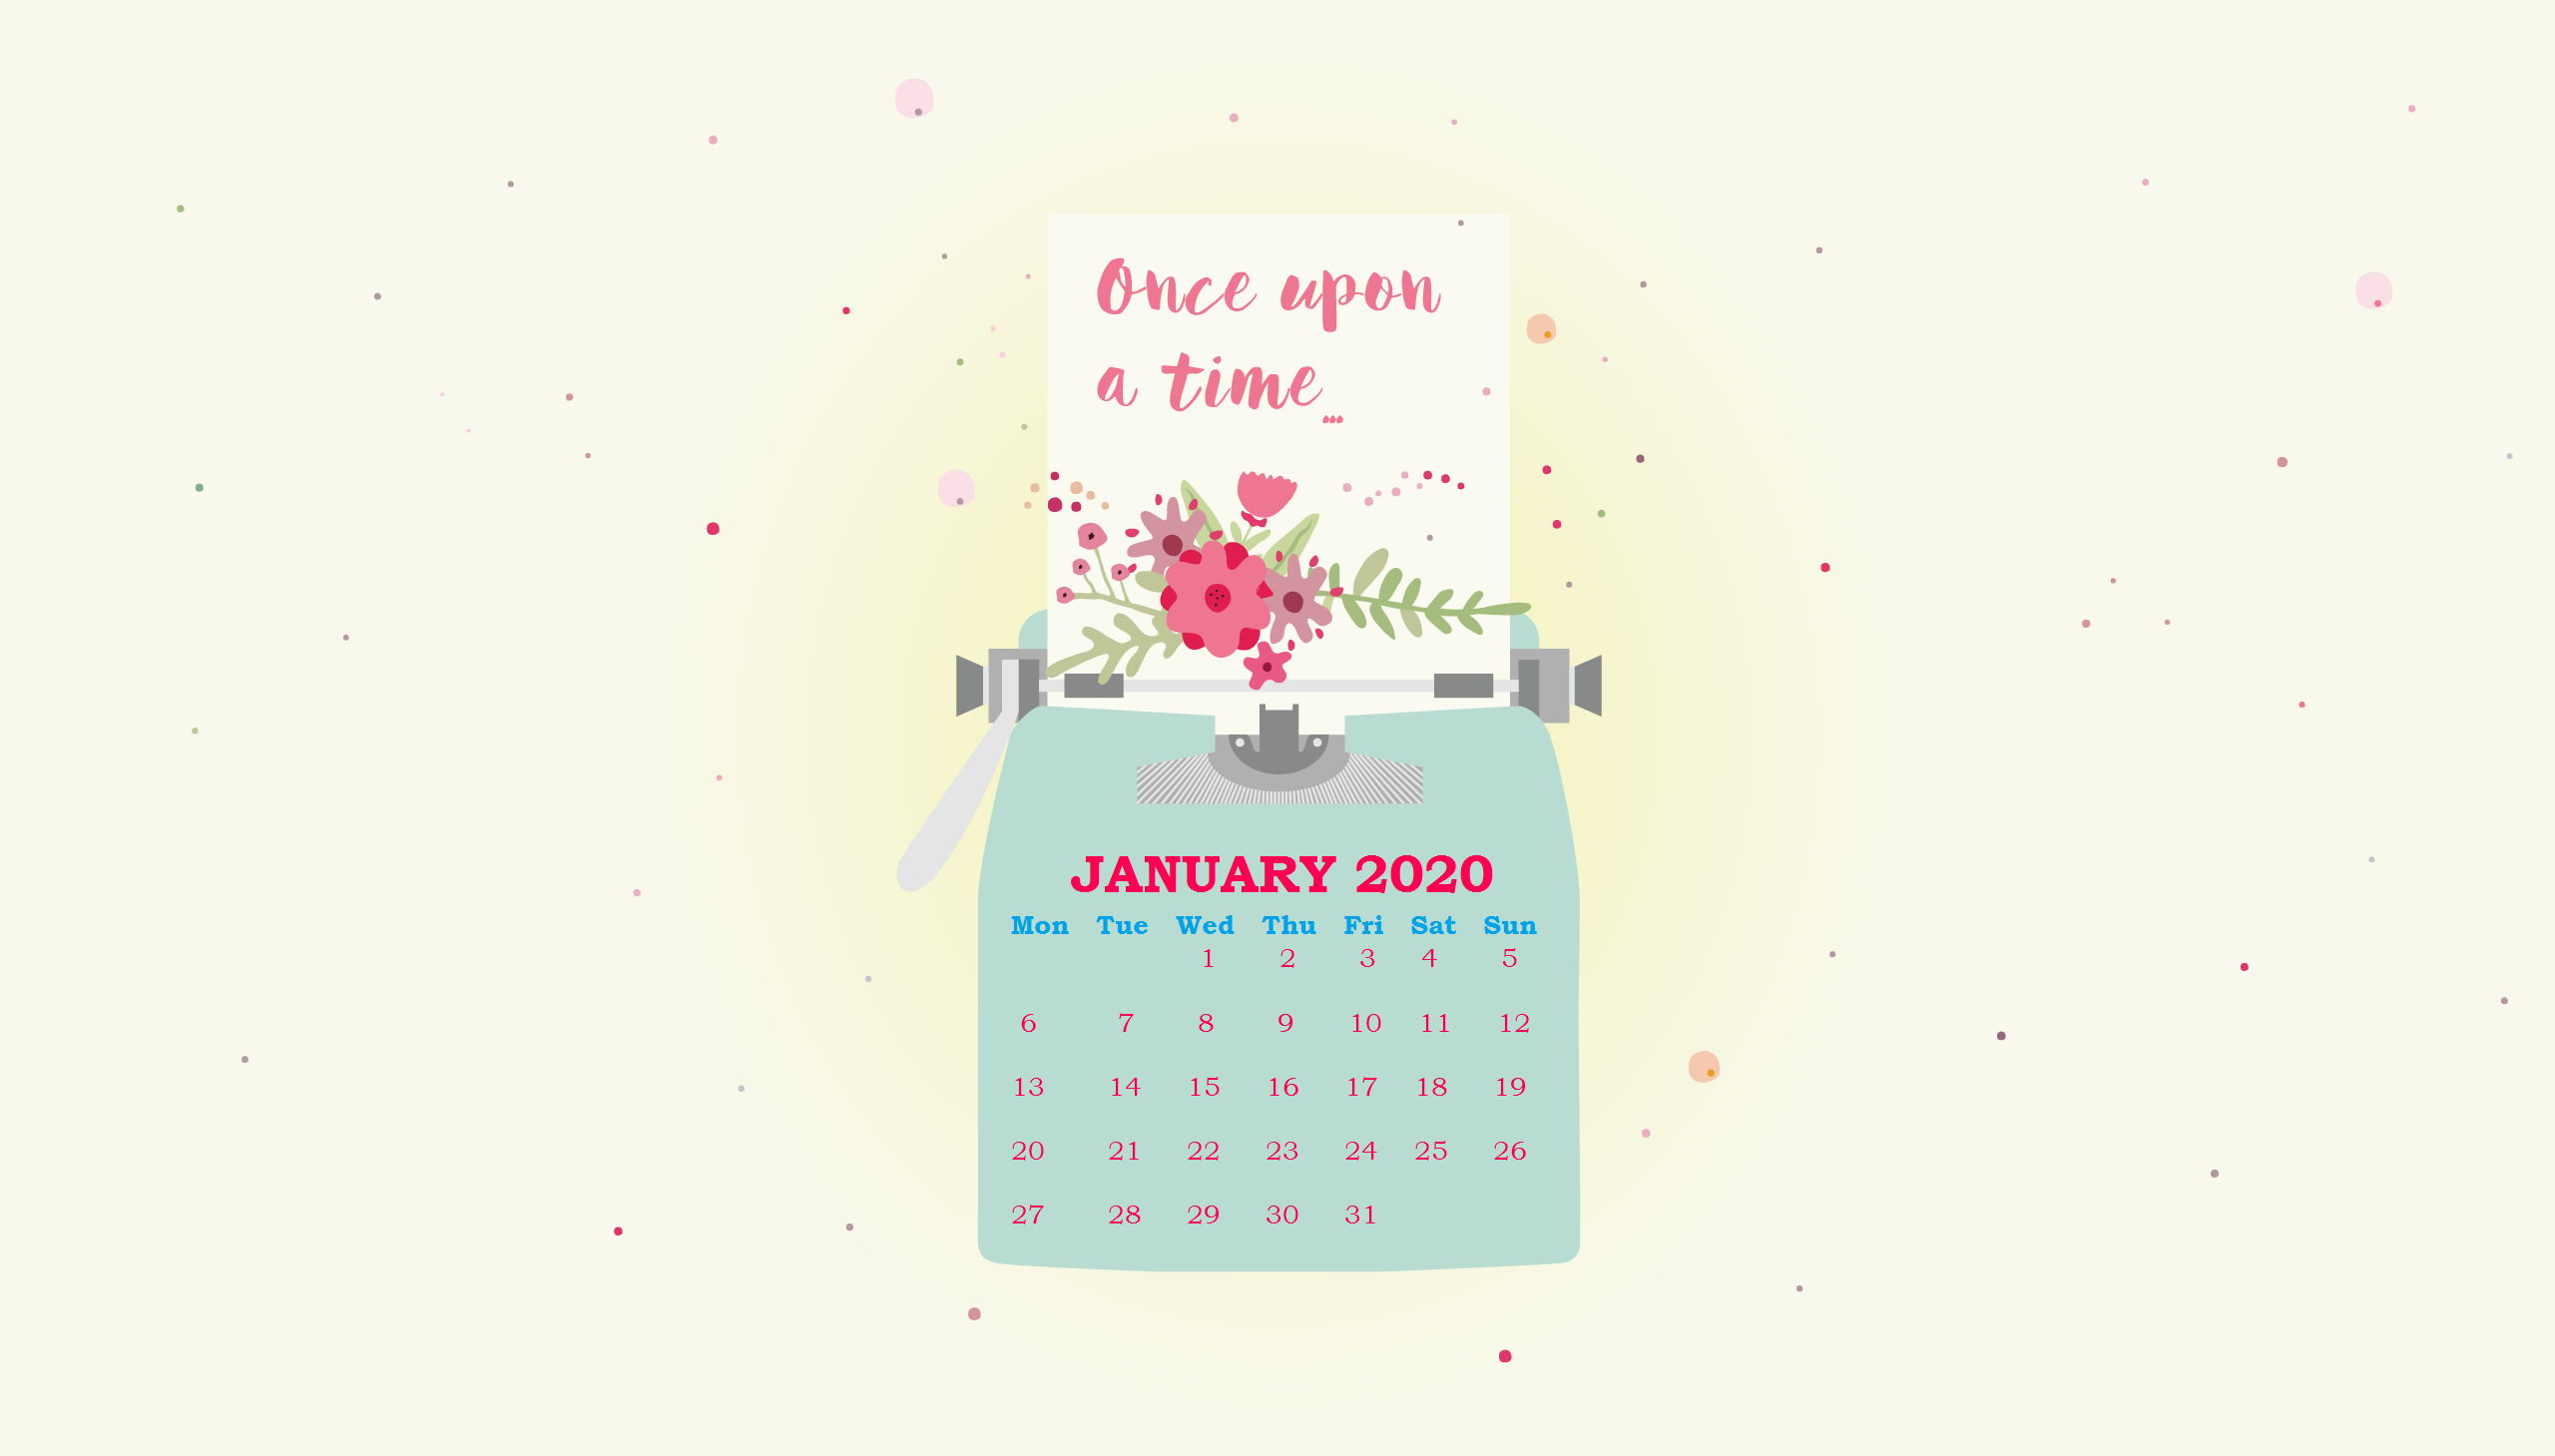 January 2020 Wallpaper Calendar Calendar 2019 2560x1459